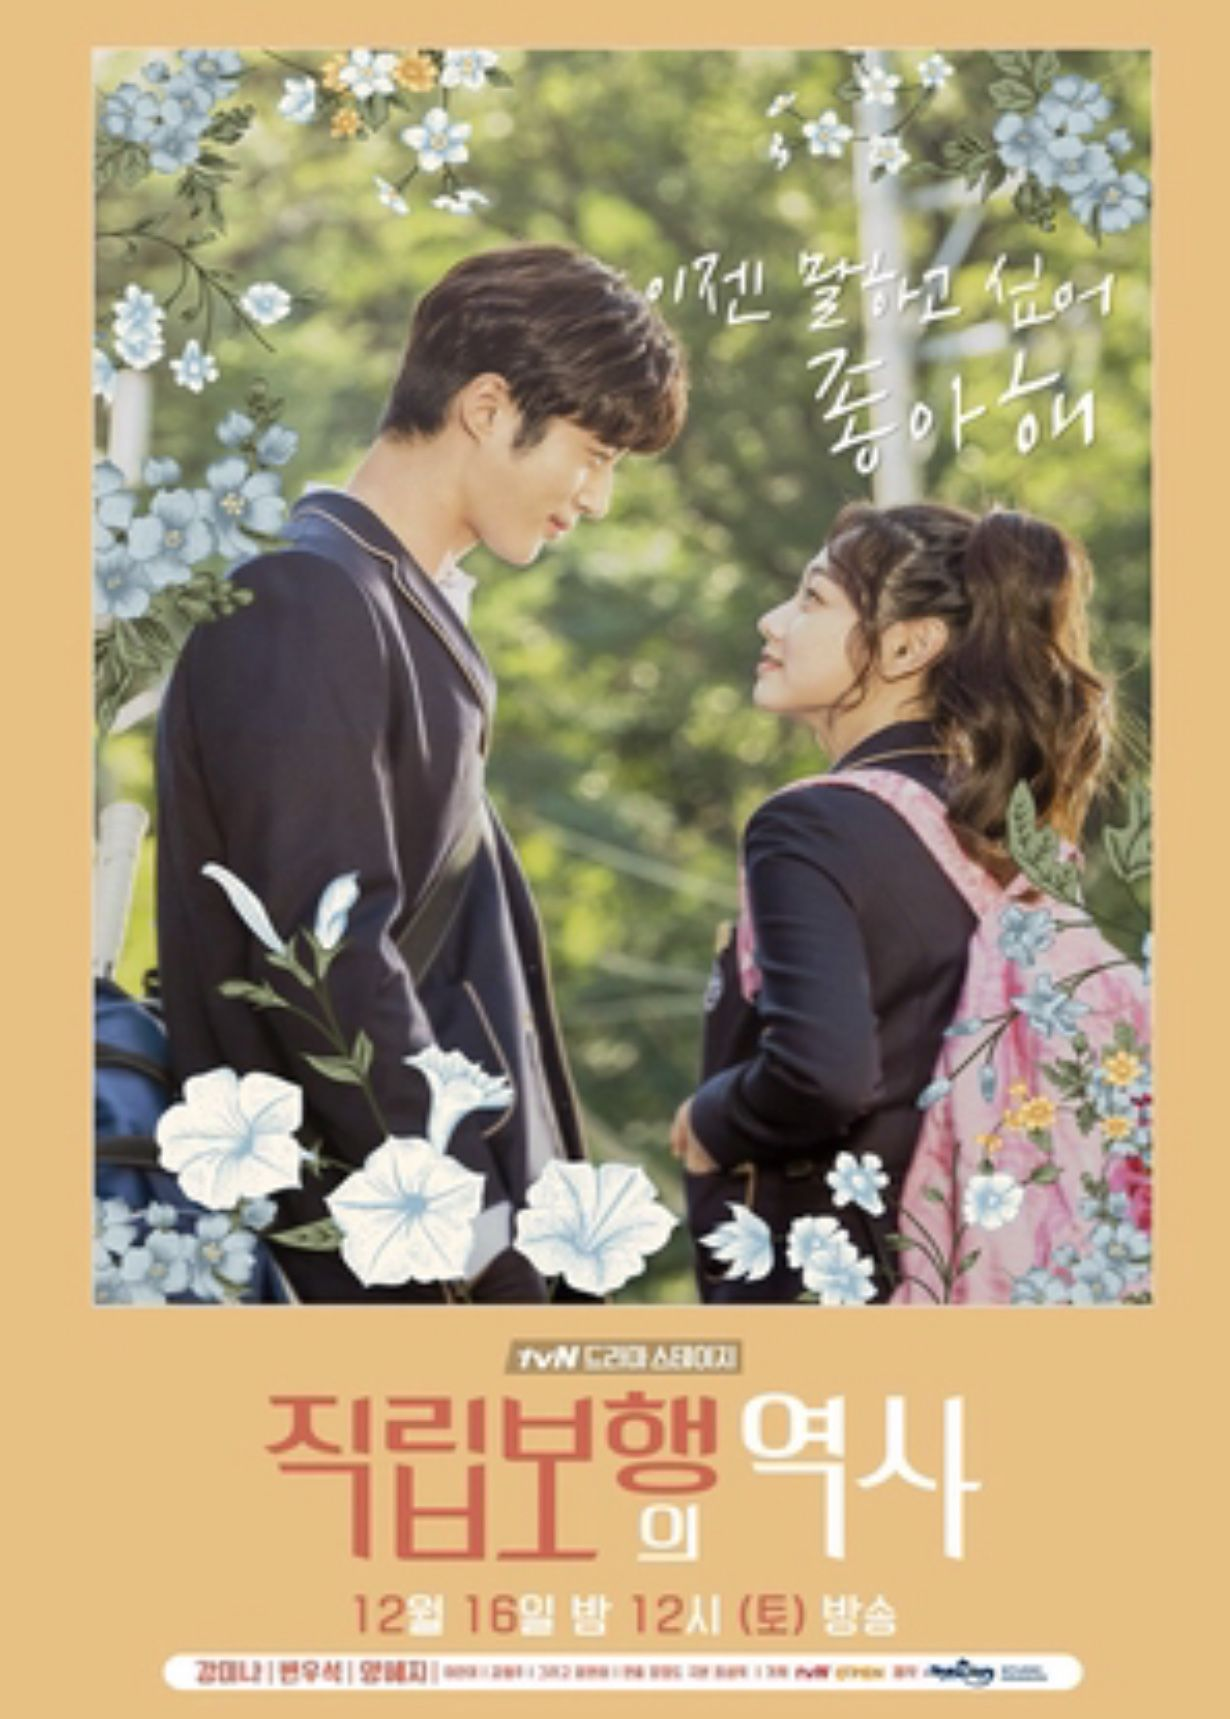 Doram Boys of Colorful Flowers: actors and characters, plot line